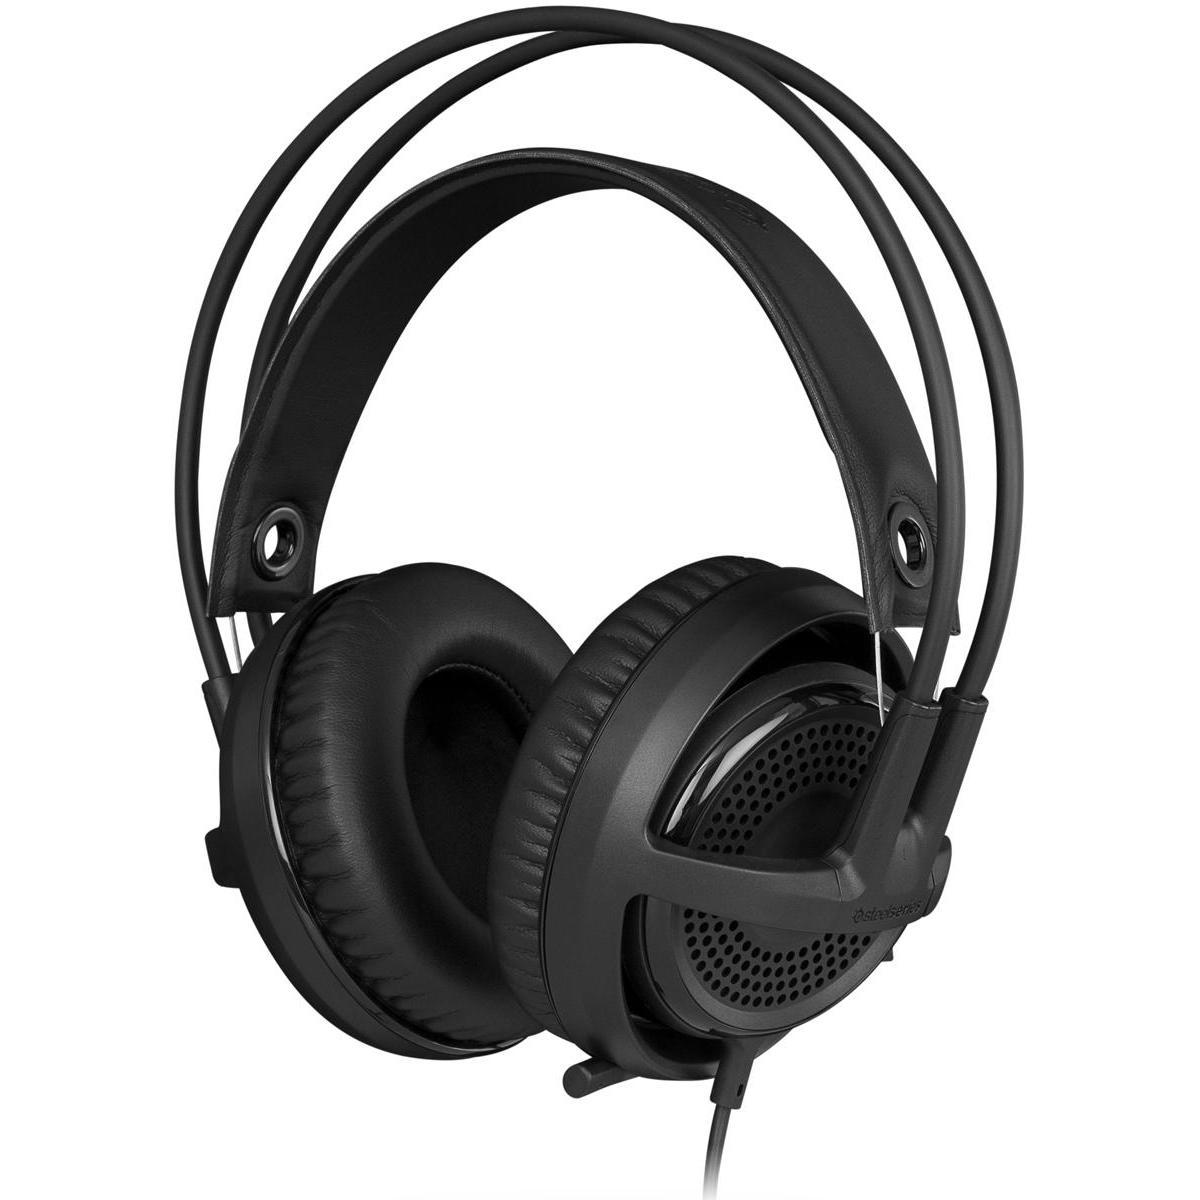 Casque SteelSeries Siberia V3 - Noir